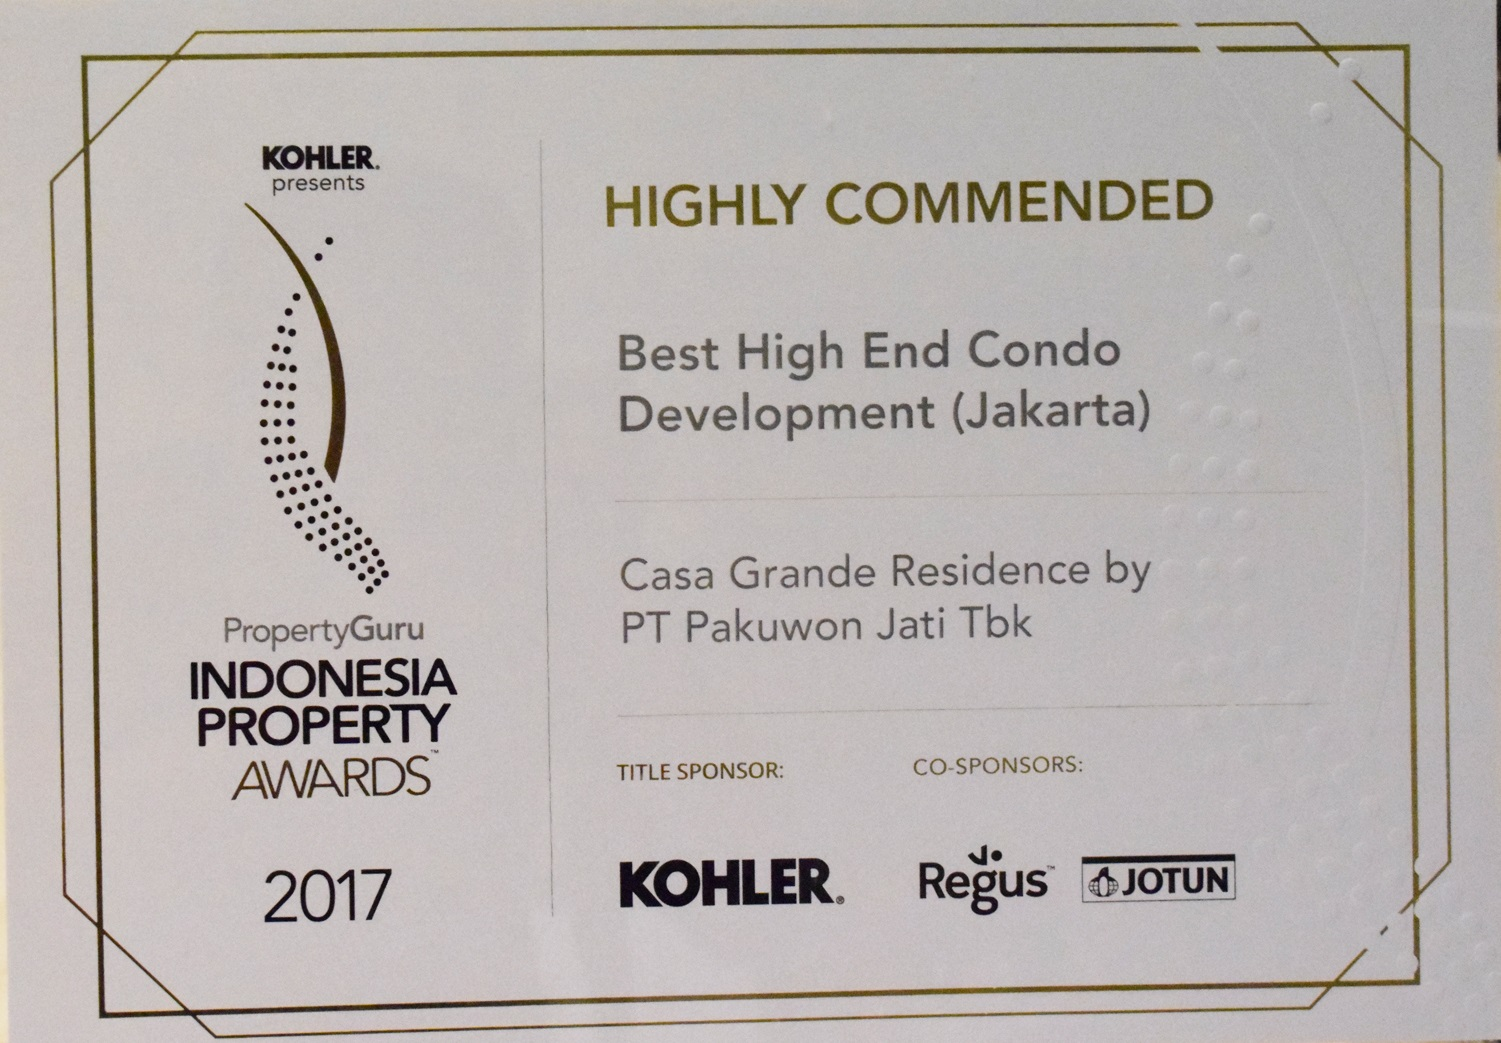 /public/files/image-companny/award-slider/BestHighEndCondoDevelopmentCasaGrandeResidence-IndonesiaPropertyAwards2017.jpg